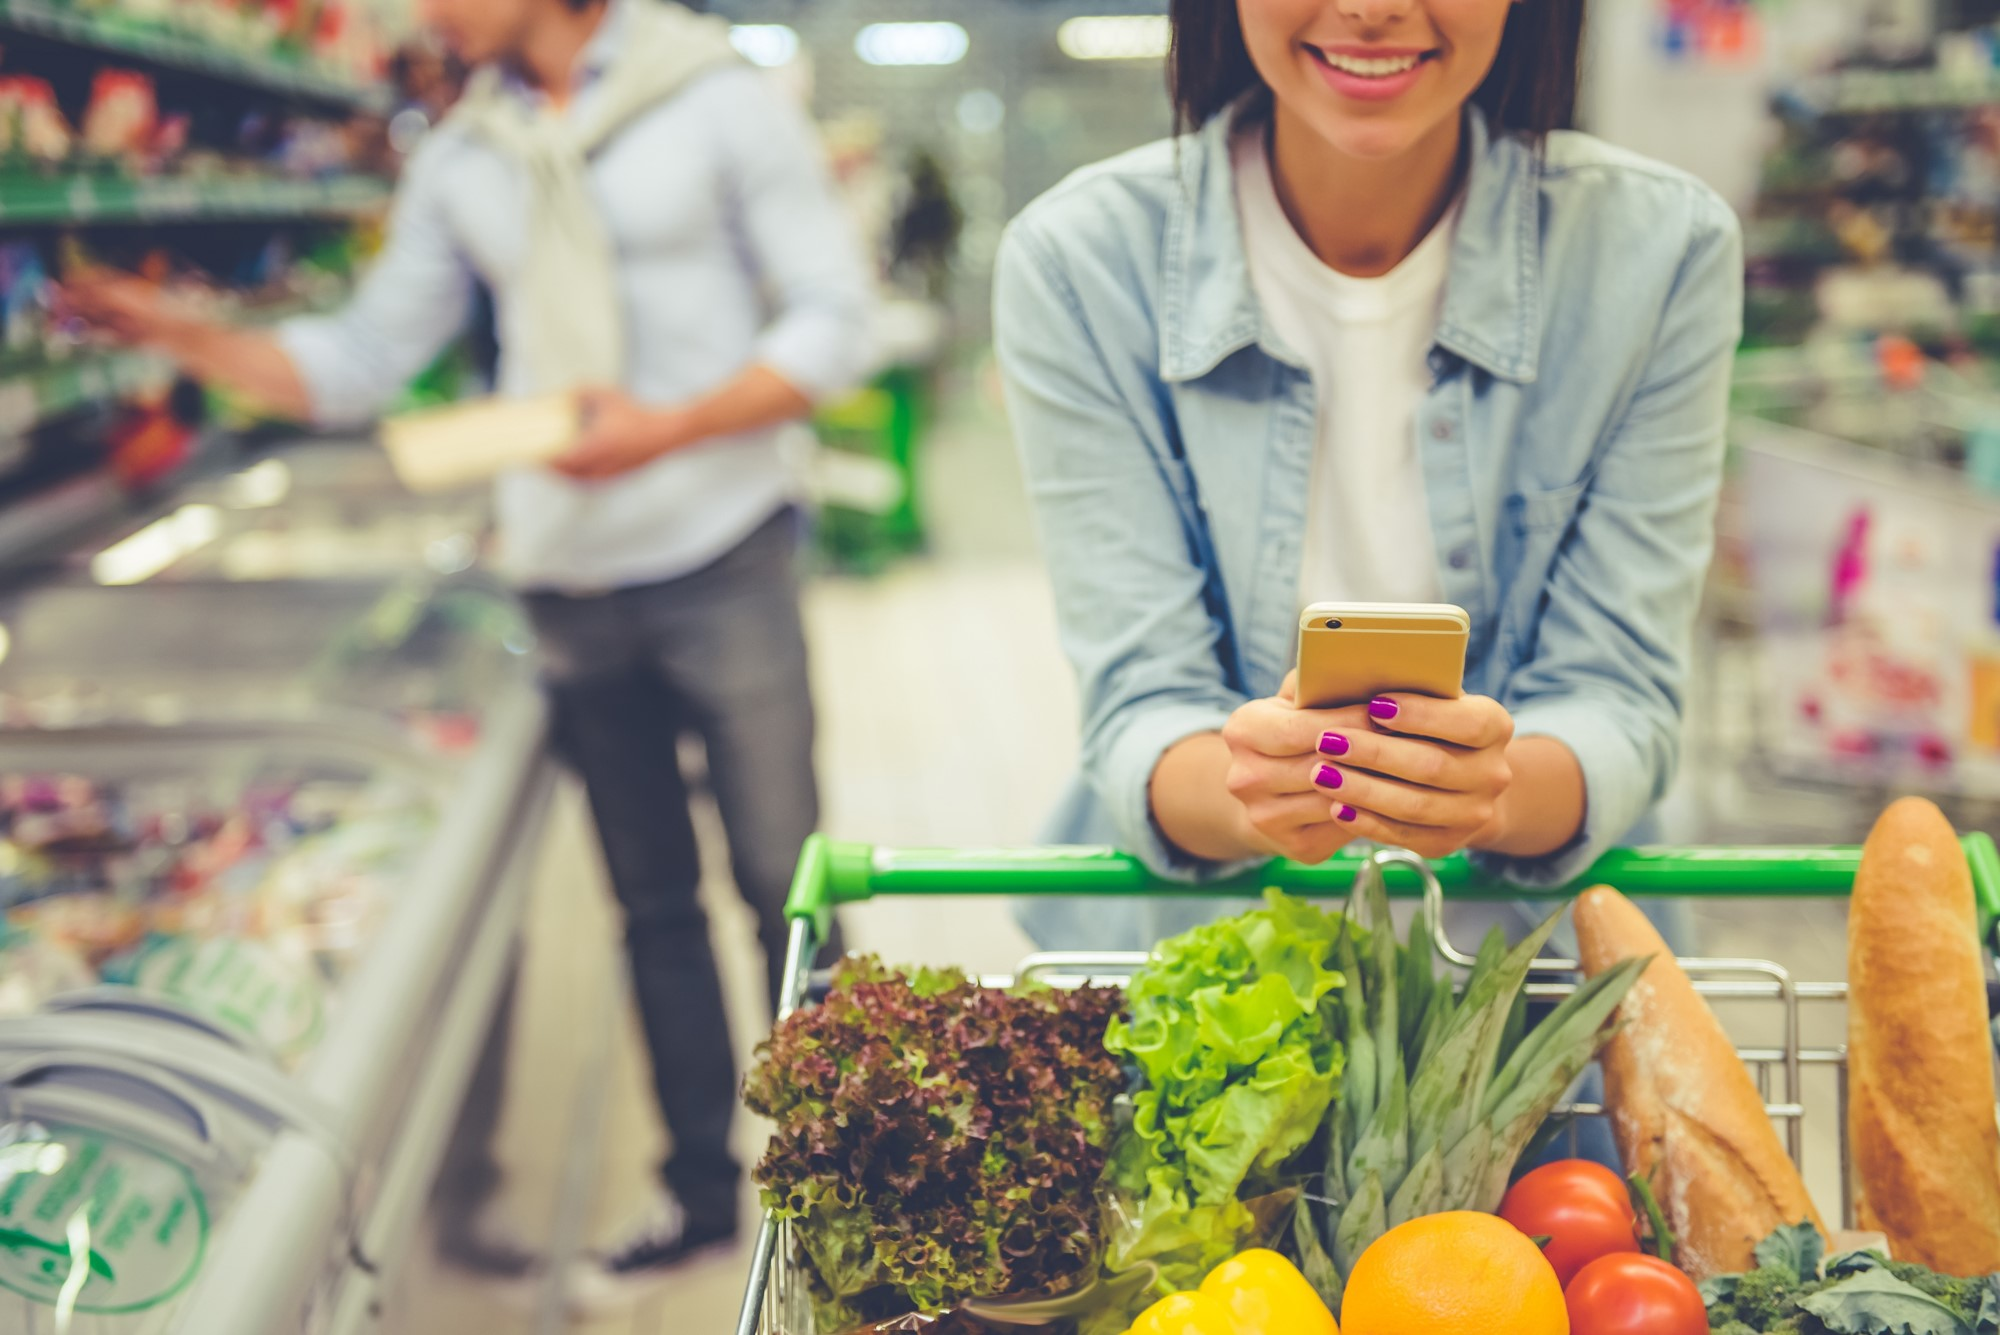 Tackle retail disruption with faster speed to insight